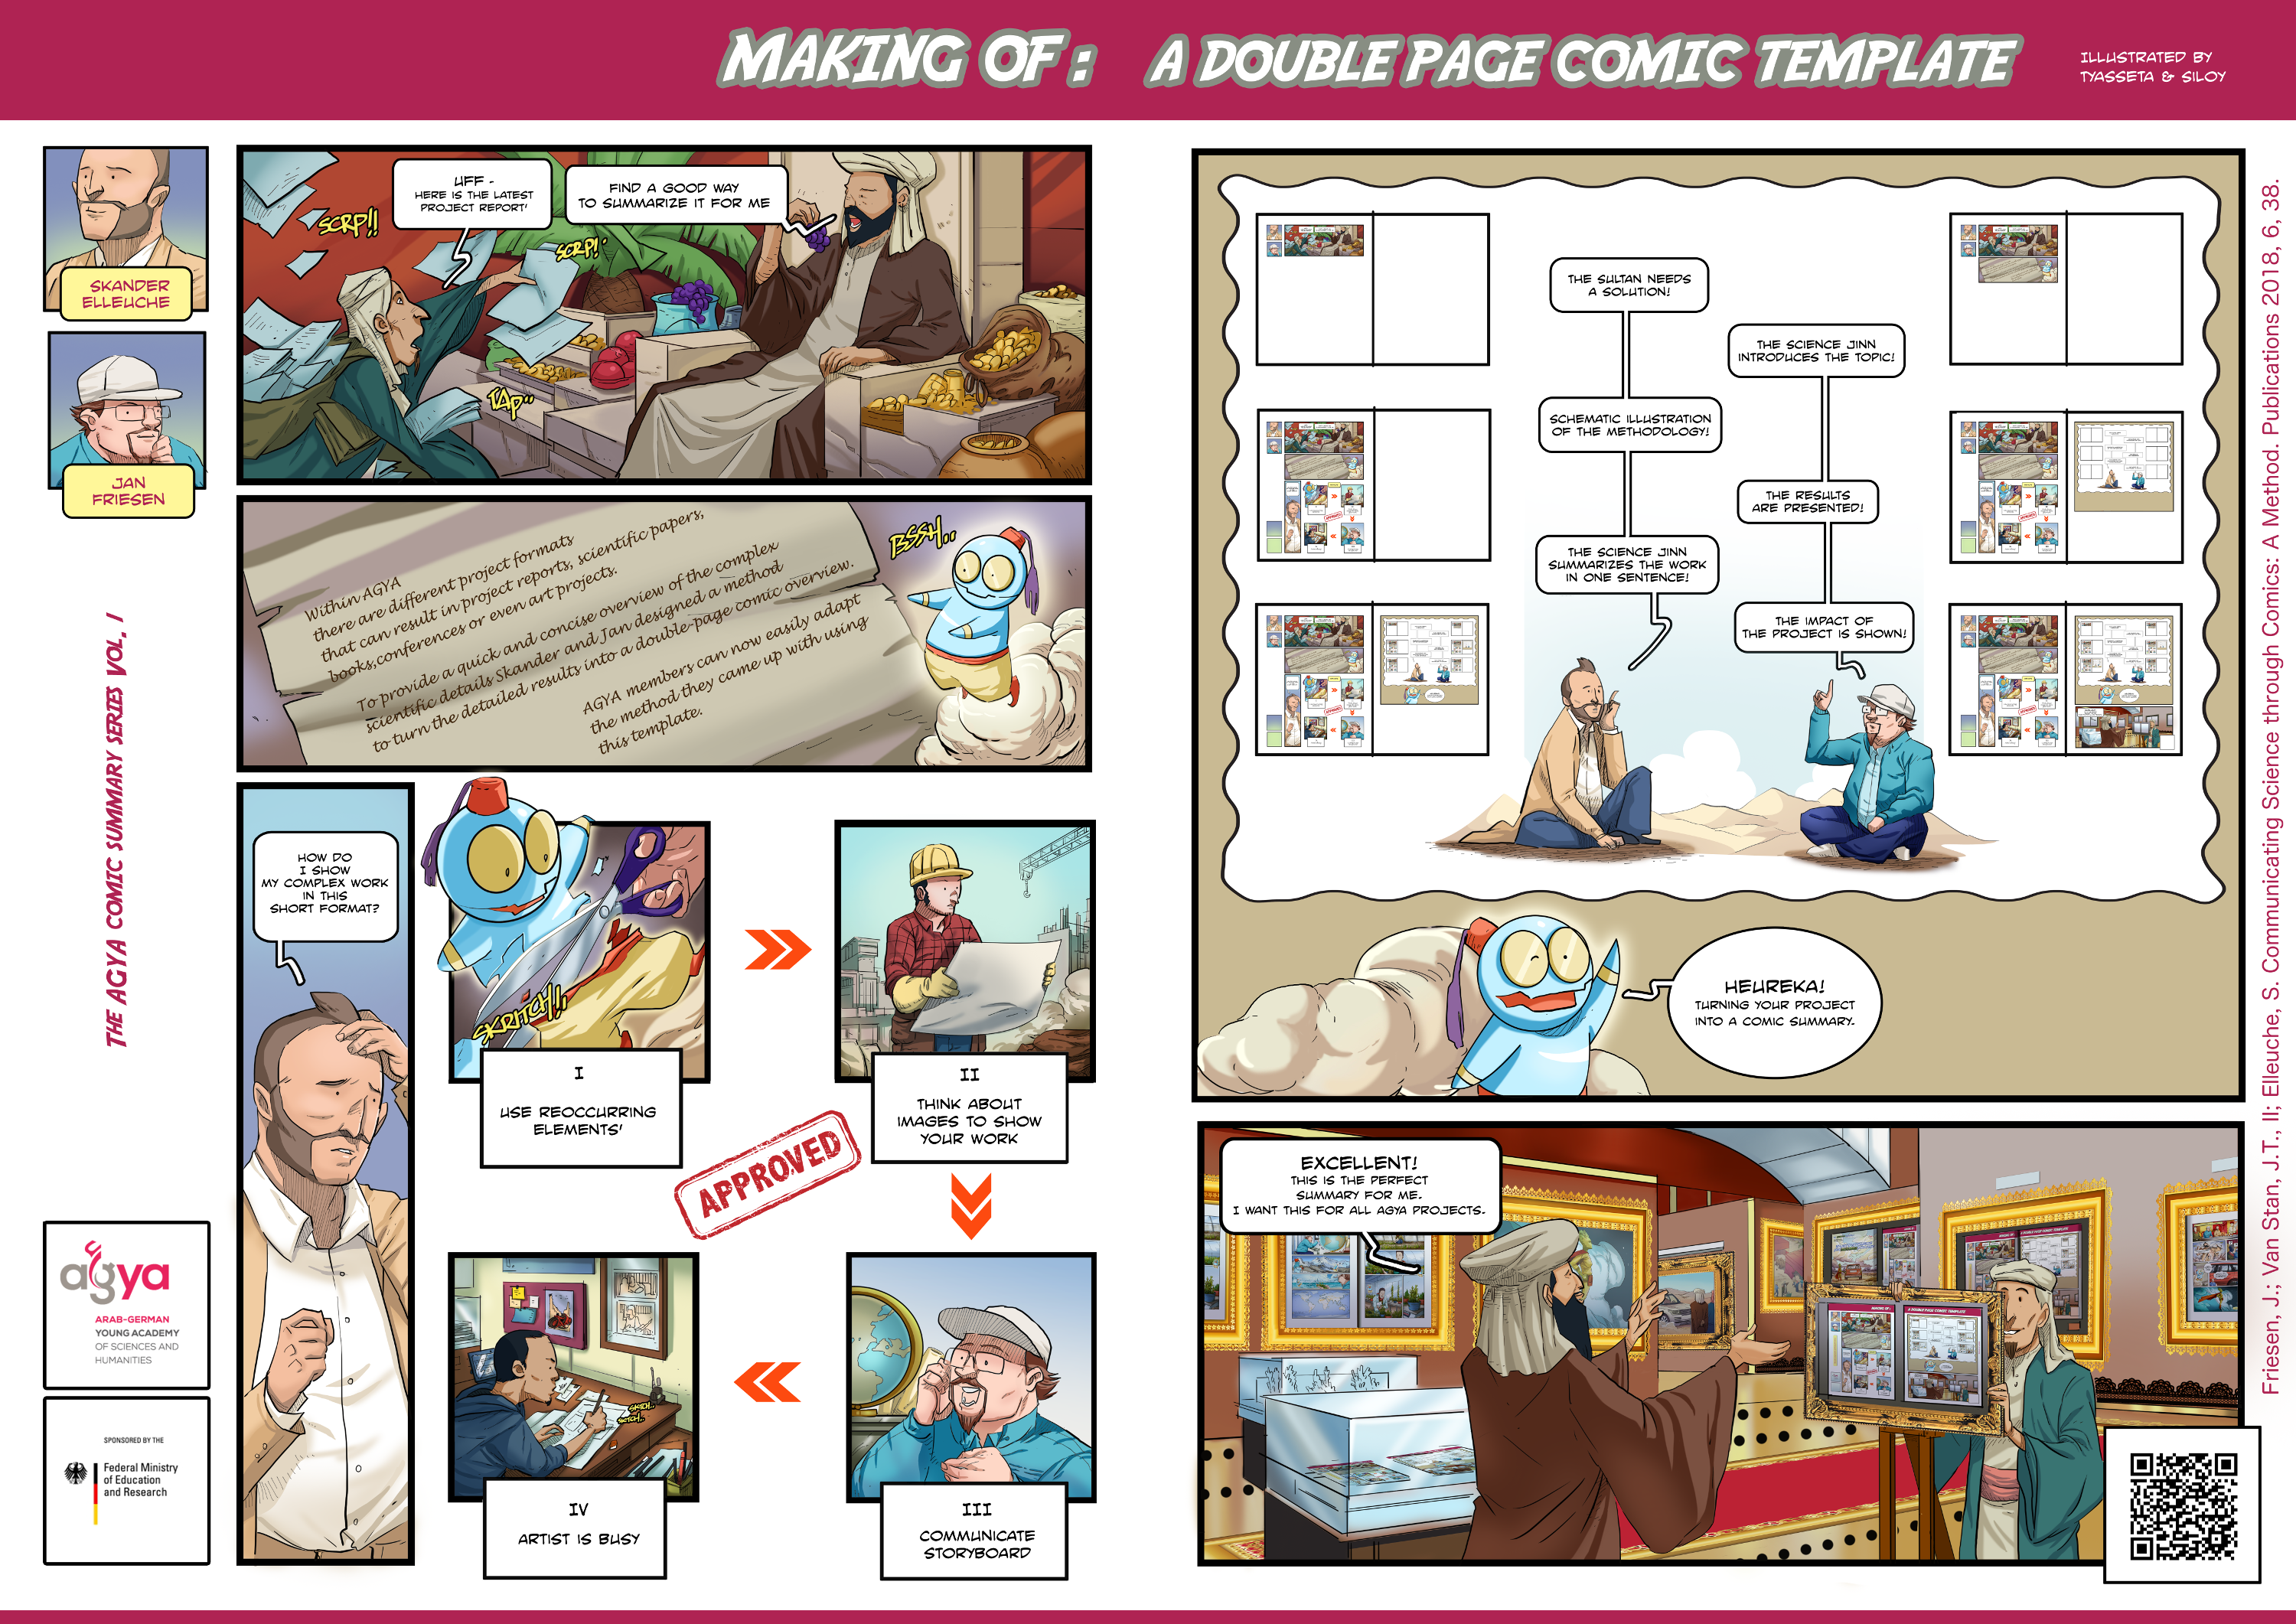 ElleucheFriesen_Making of a double page comic summary